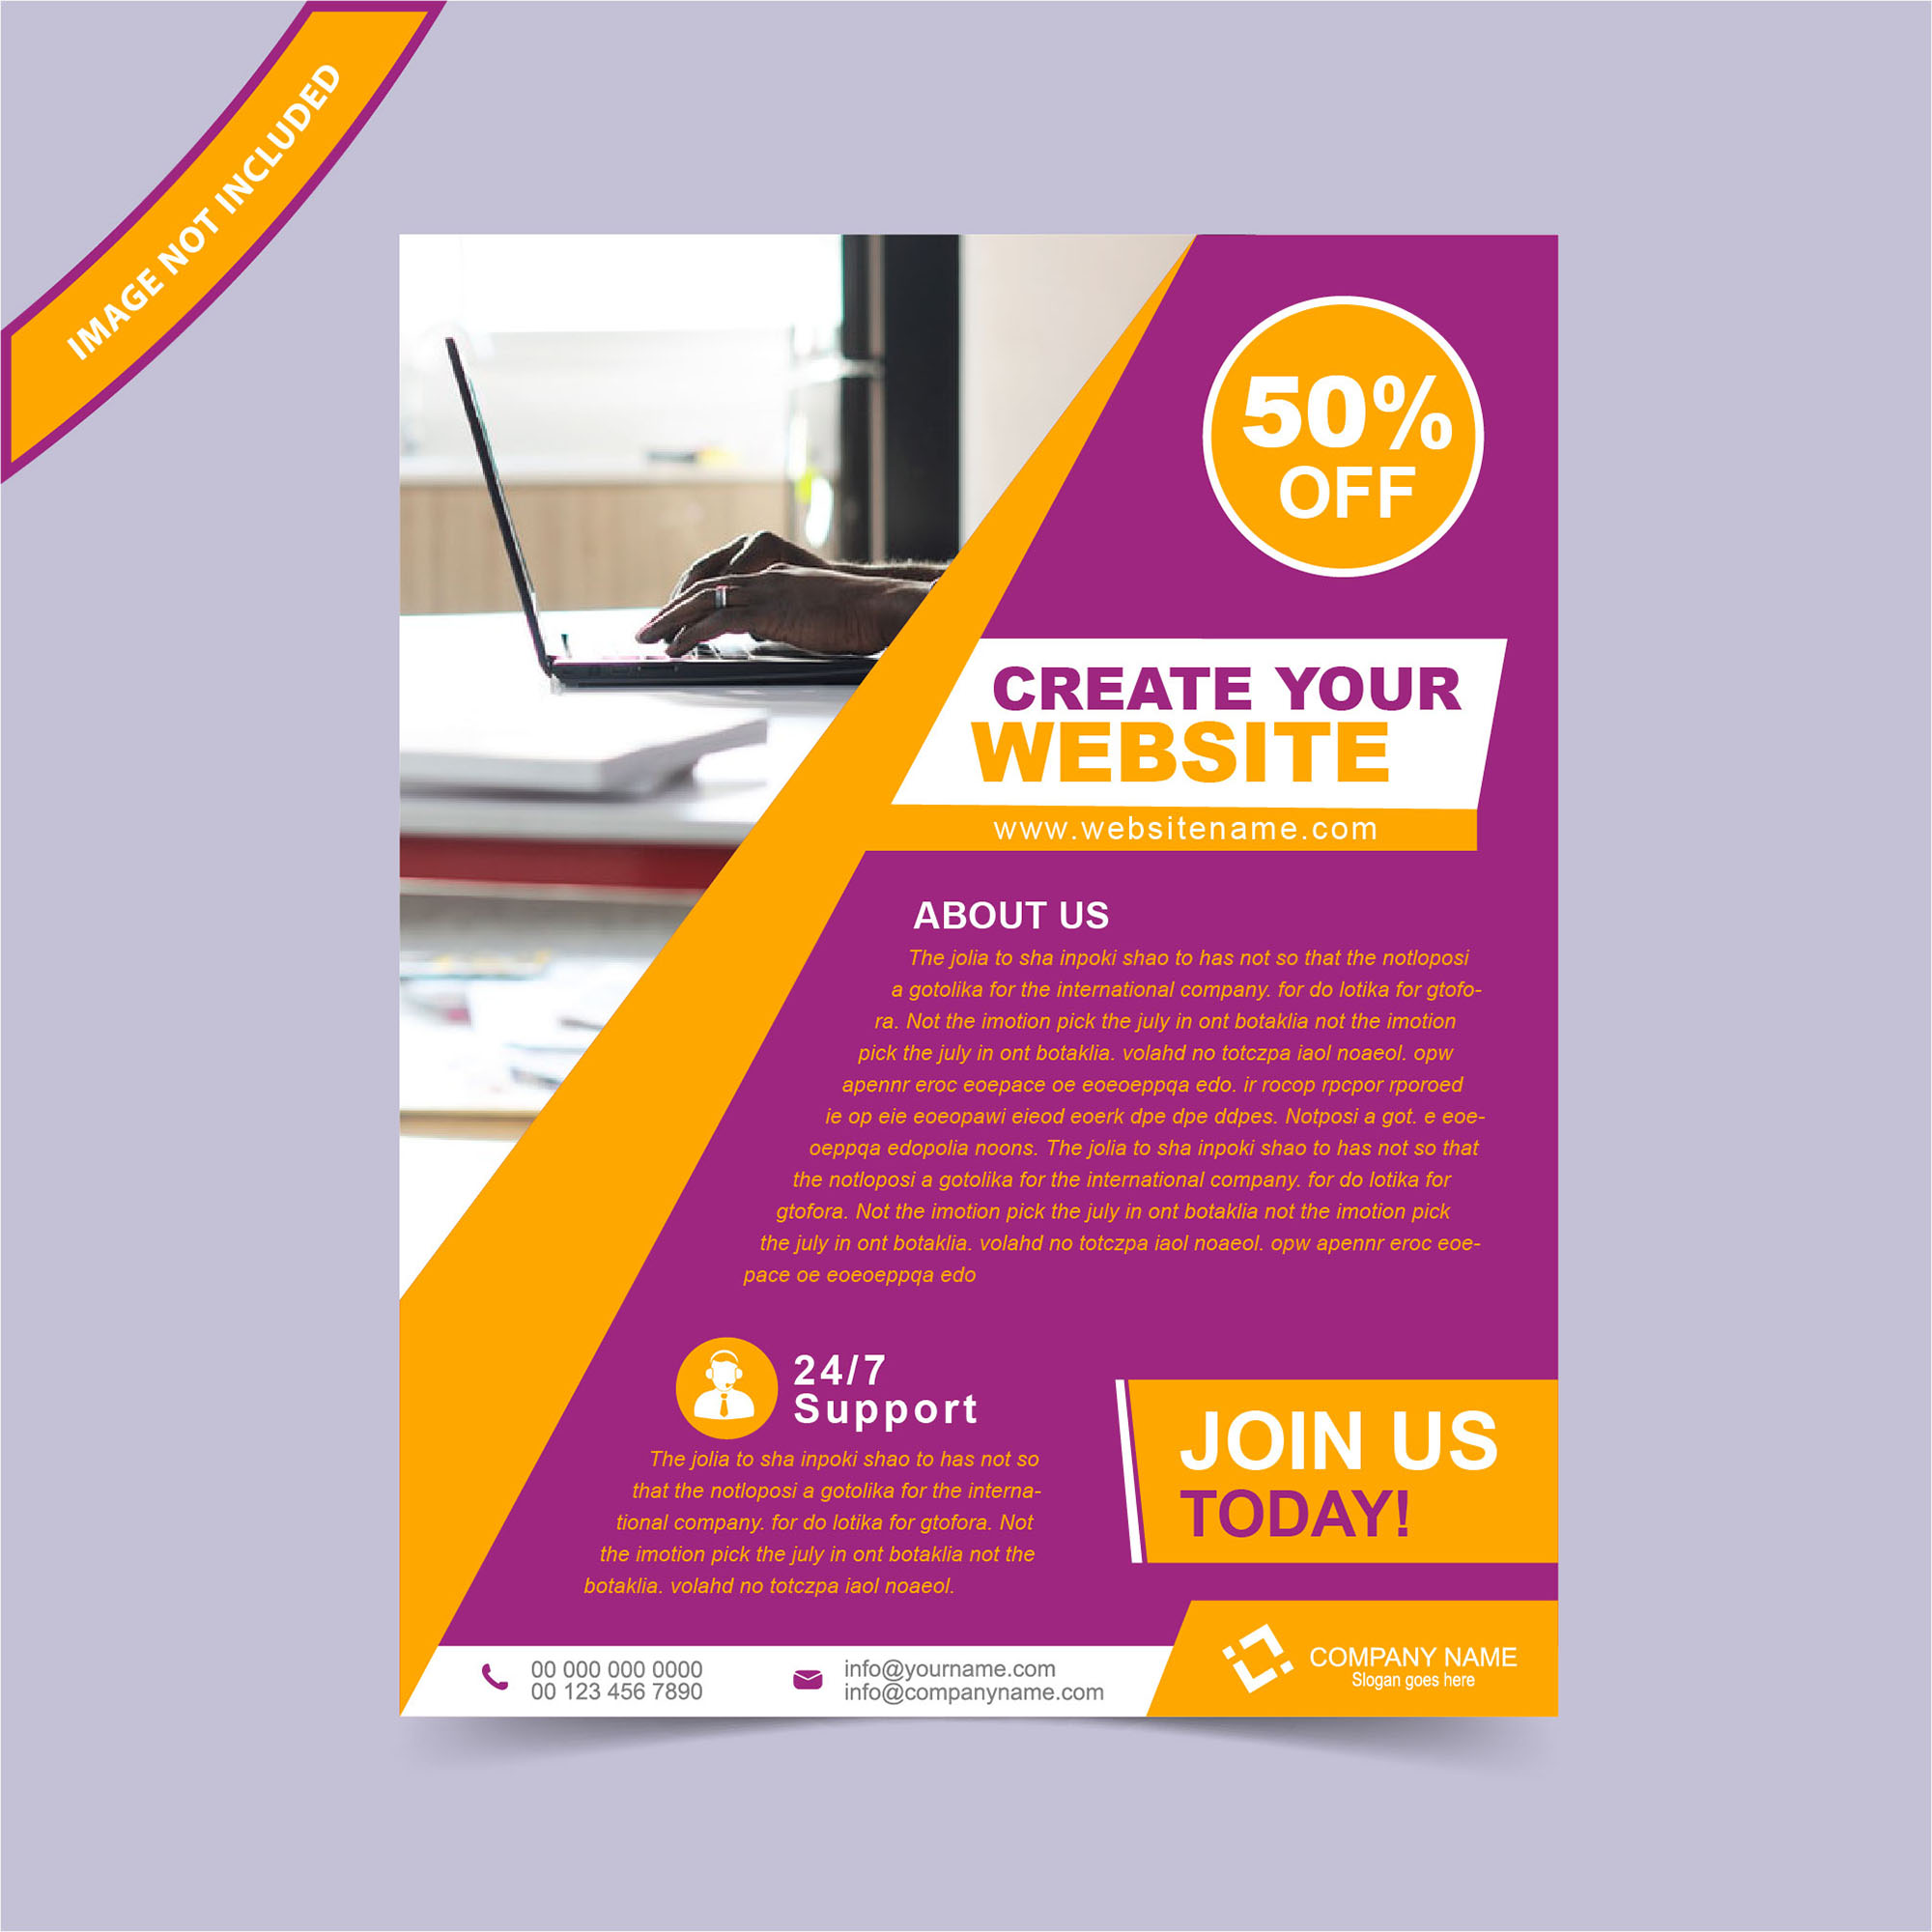 Flyers, Flyer Design, Flyer Template, Free Flyer Design, Abstract, Business,  Advertising Flyers Templates Free